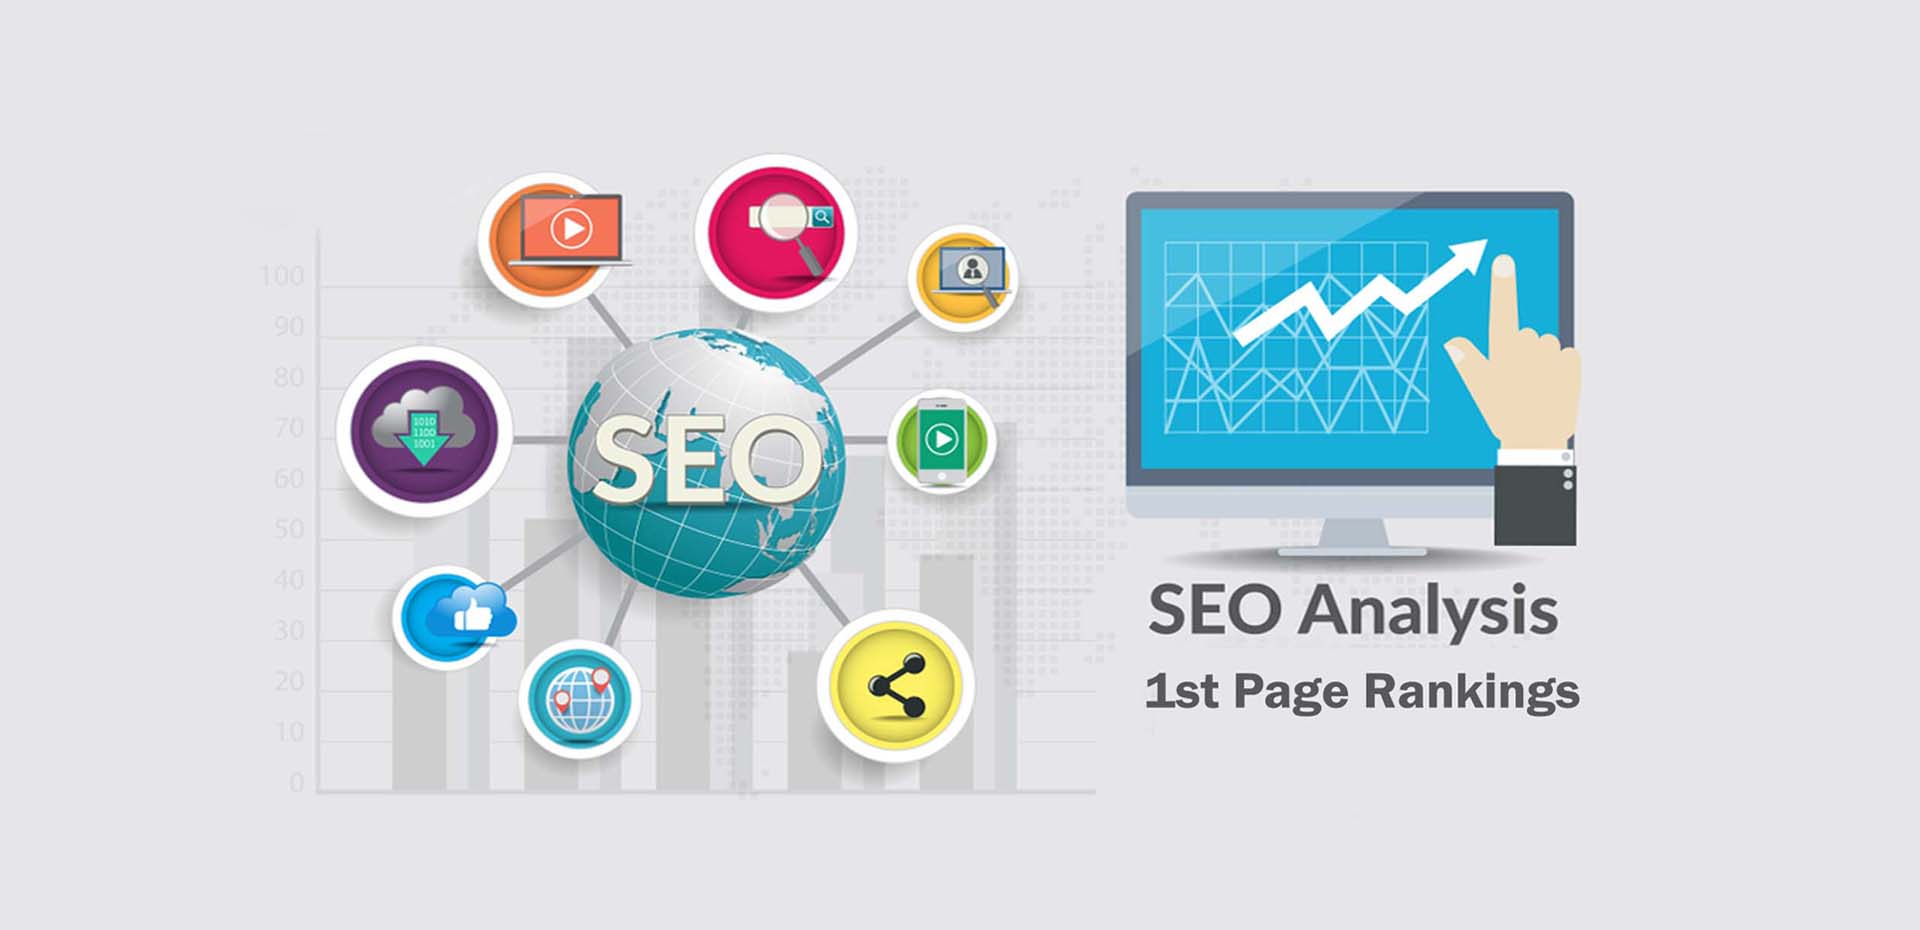 SEO Outsourcing Services | Cheap SEO Services > Best SEO Company in Karachi  Pakistan